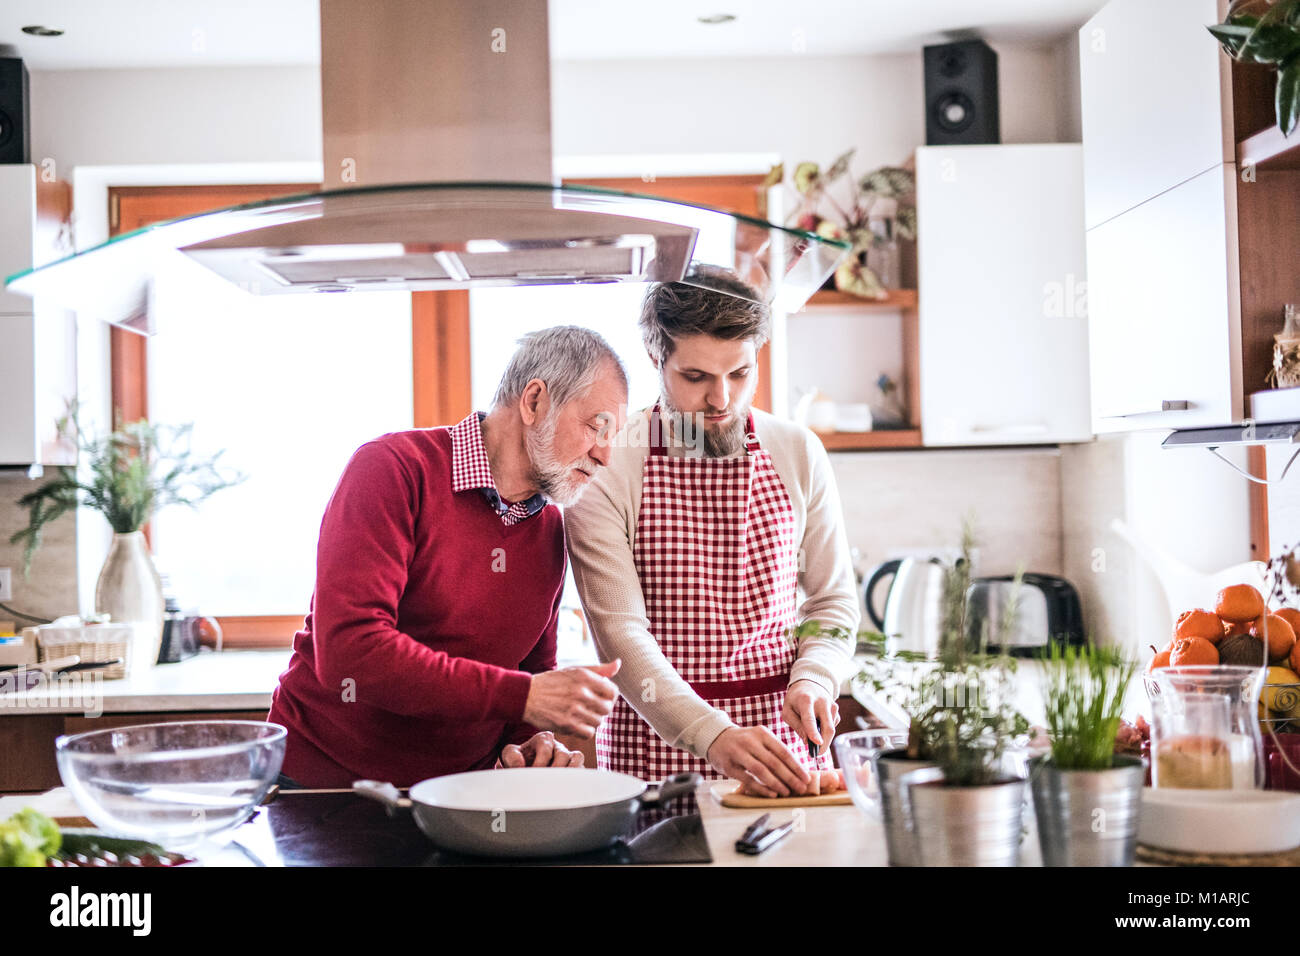 Hipster son with his senior father cooking in the kitchen. - Stock Image